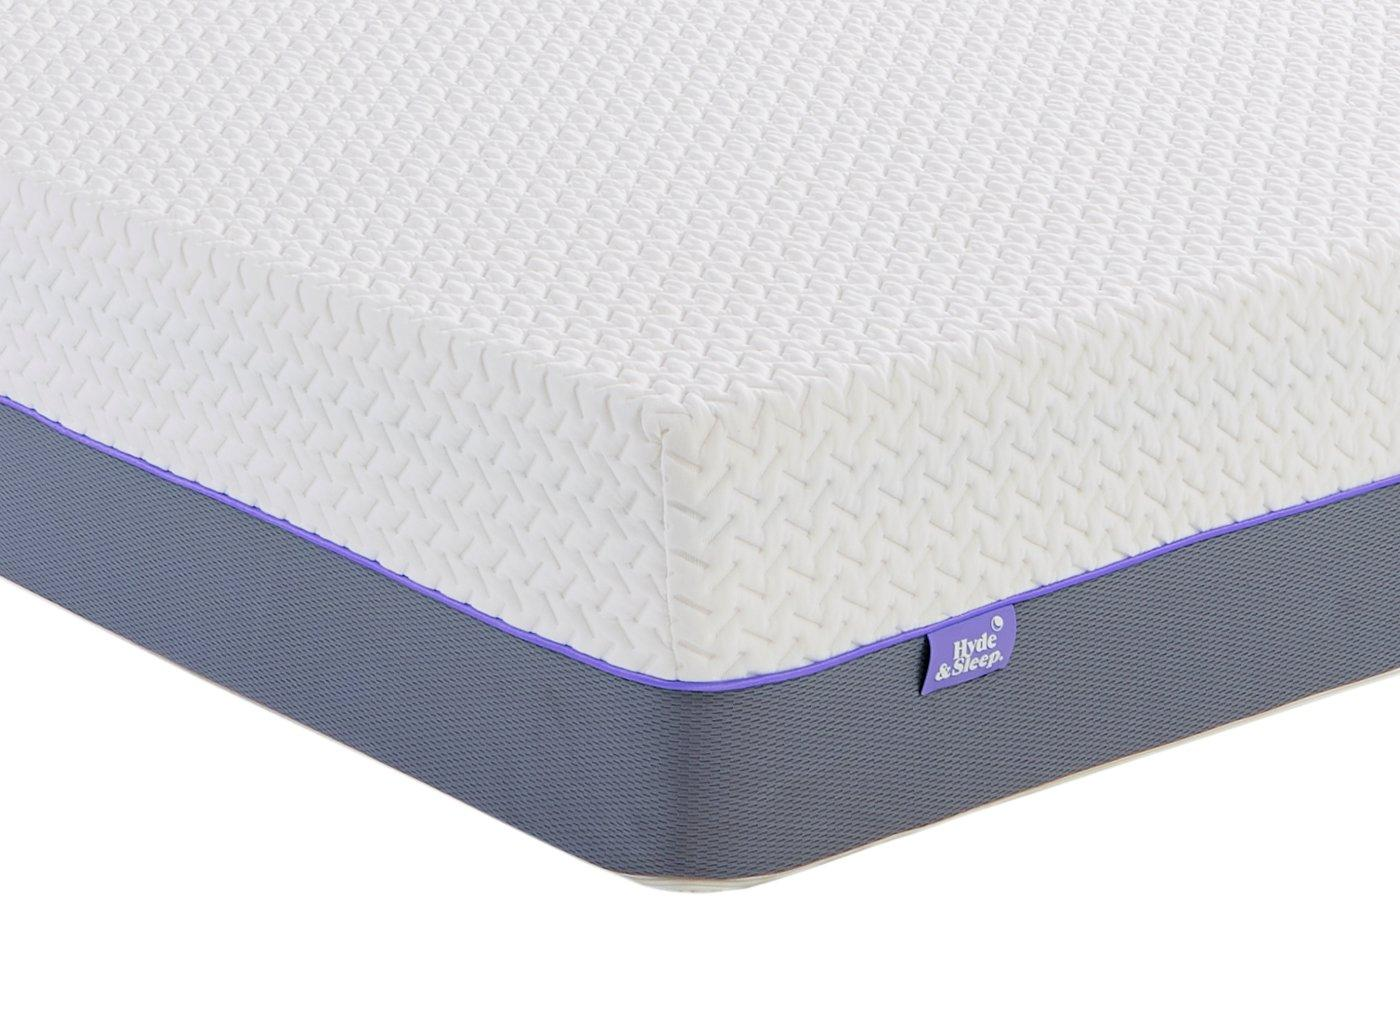 Hyde & sleep hybrid lilac mattress 4'0 small double